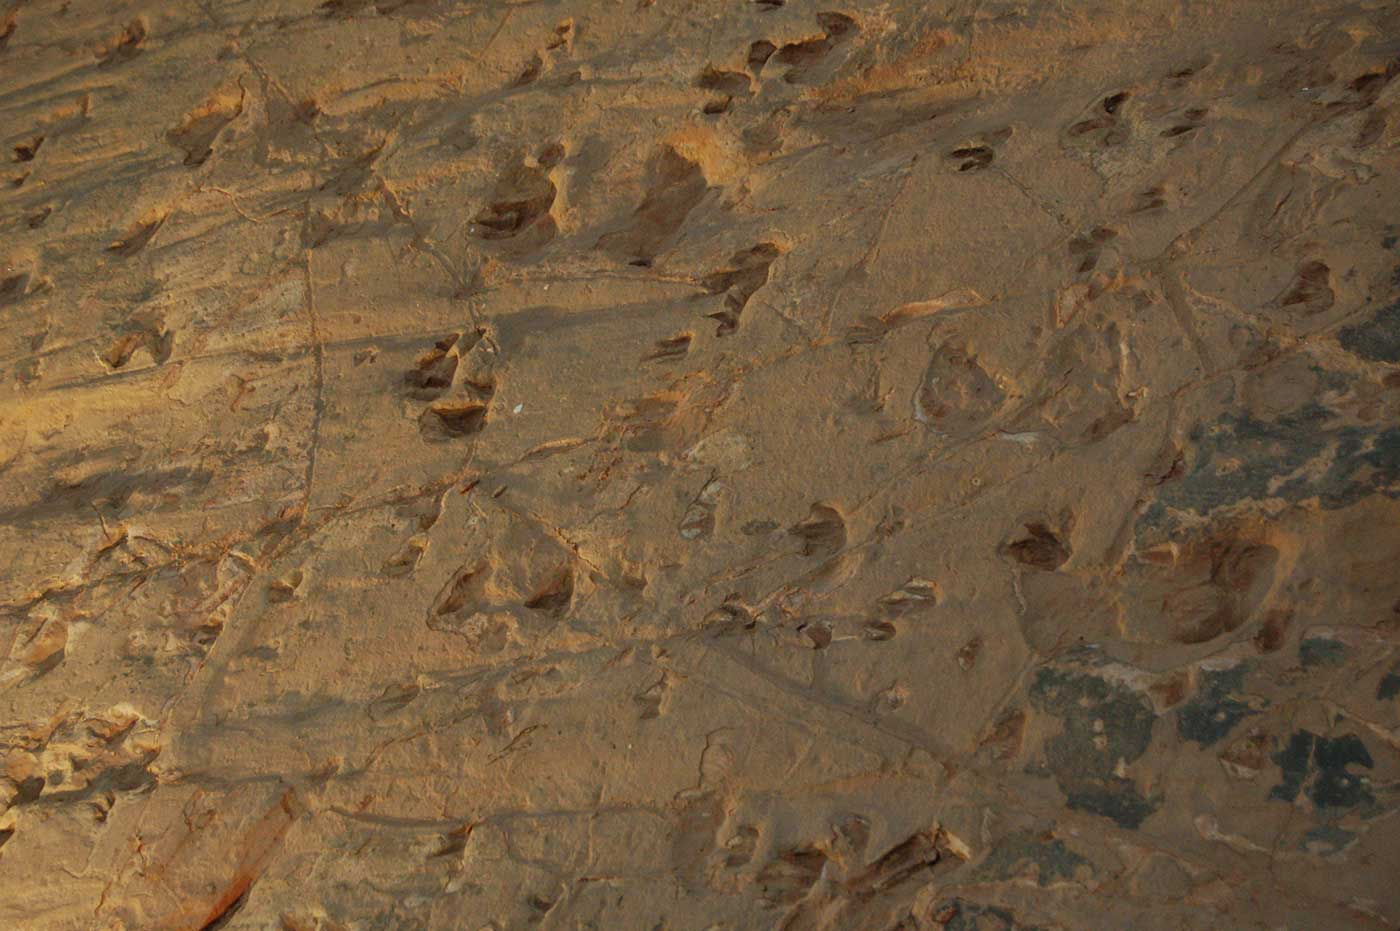 Aerial view of rock indented with various footprints and markings. - click to view larger image